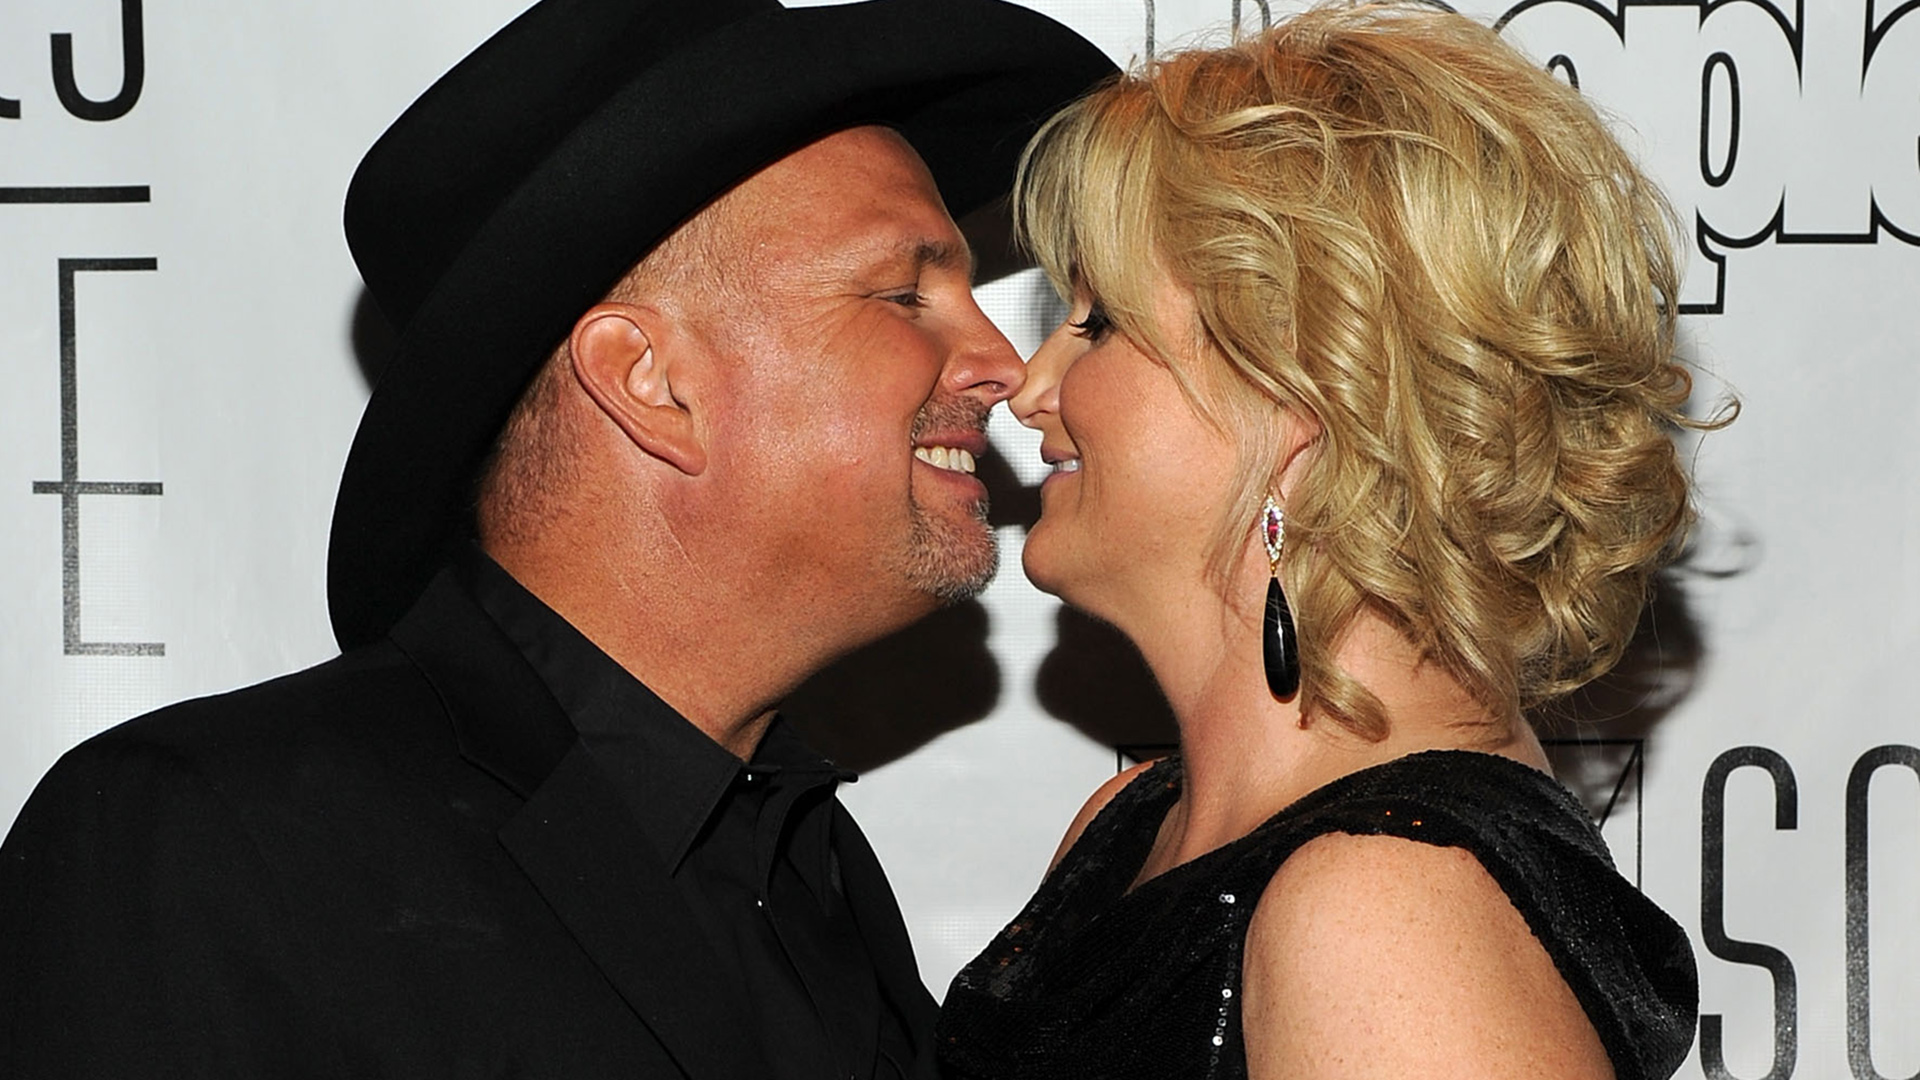 Garth brooks sends birthday wishes to wife trisha yearwood for Is garth brooks and trisha yearwood still married